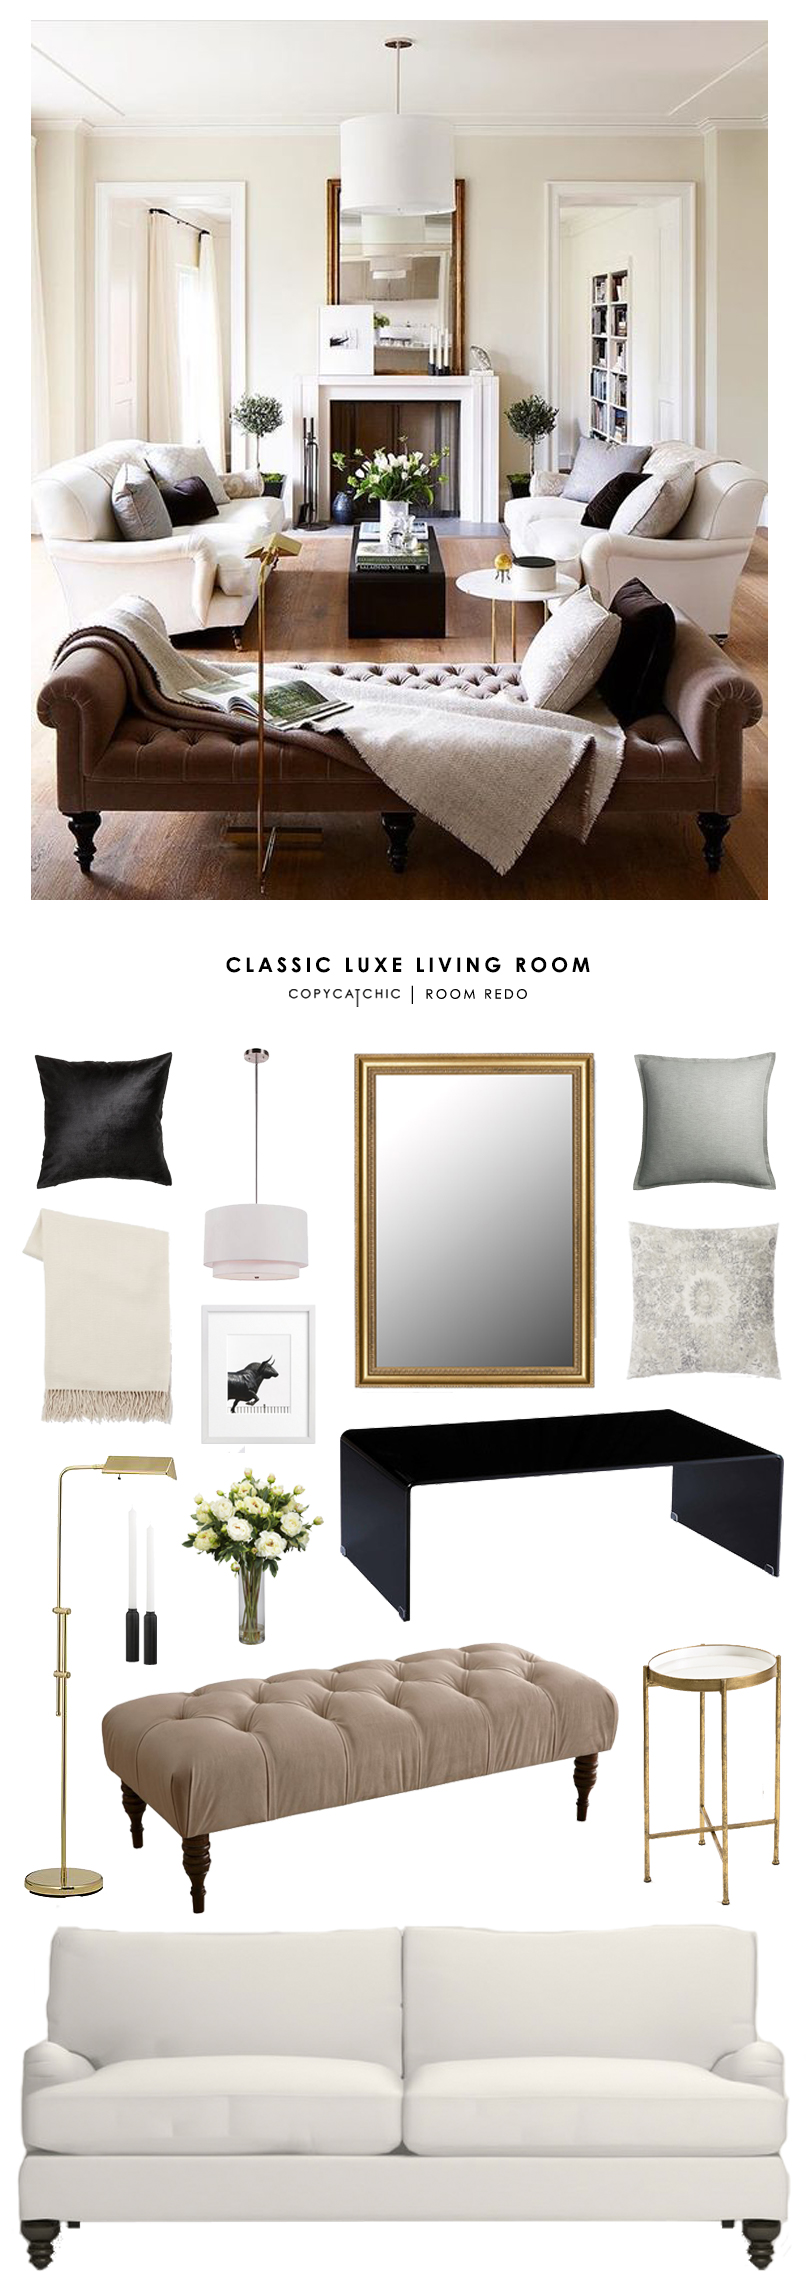 Copy cat chic room redo classic luxe living room copy for Copy designer furniture